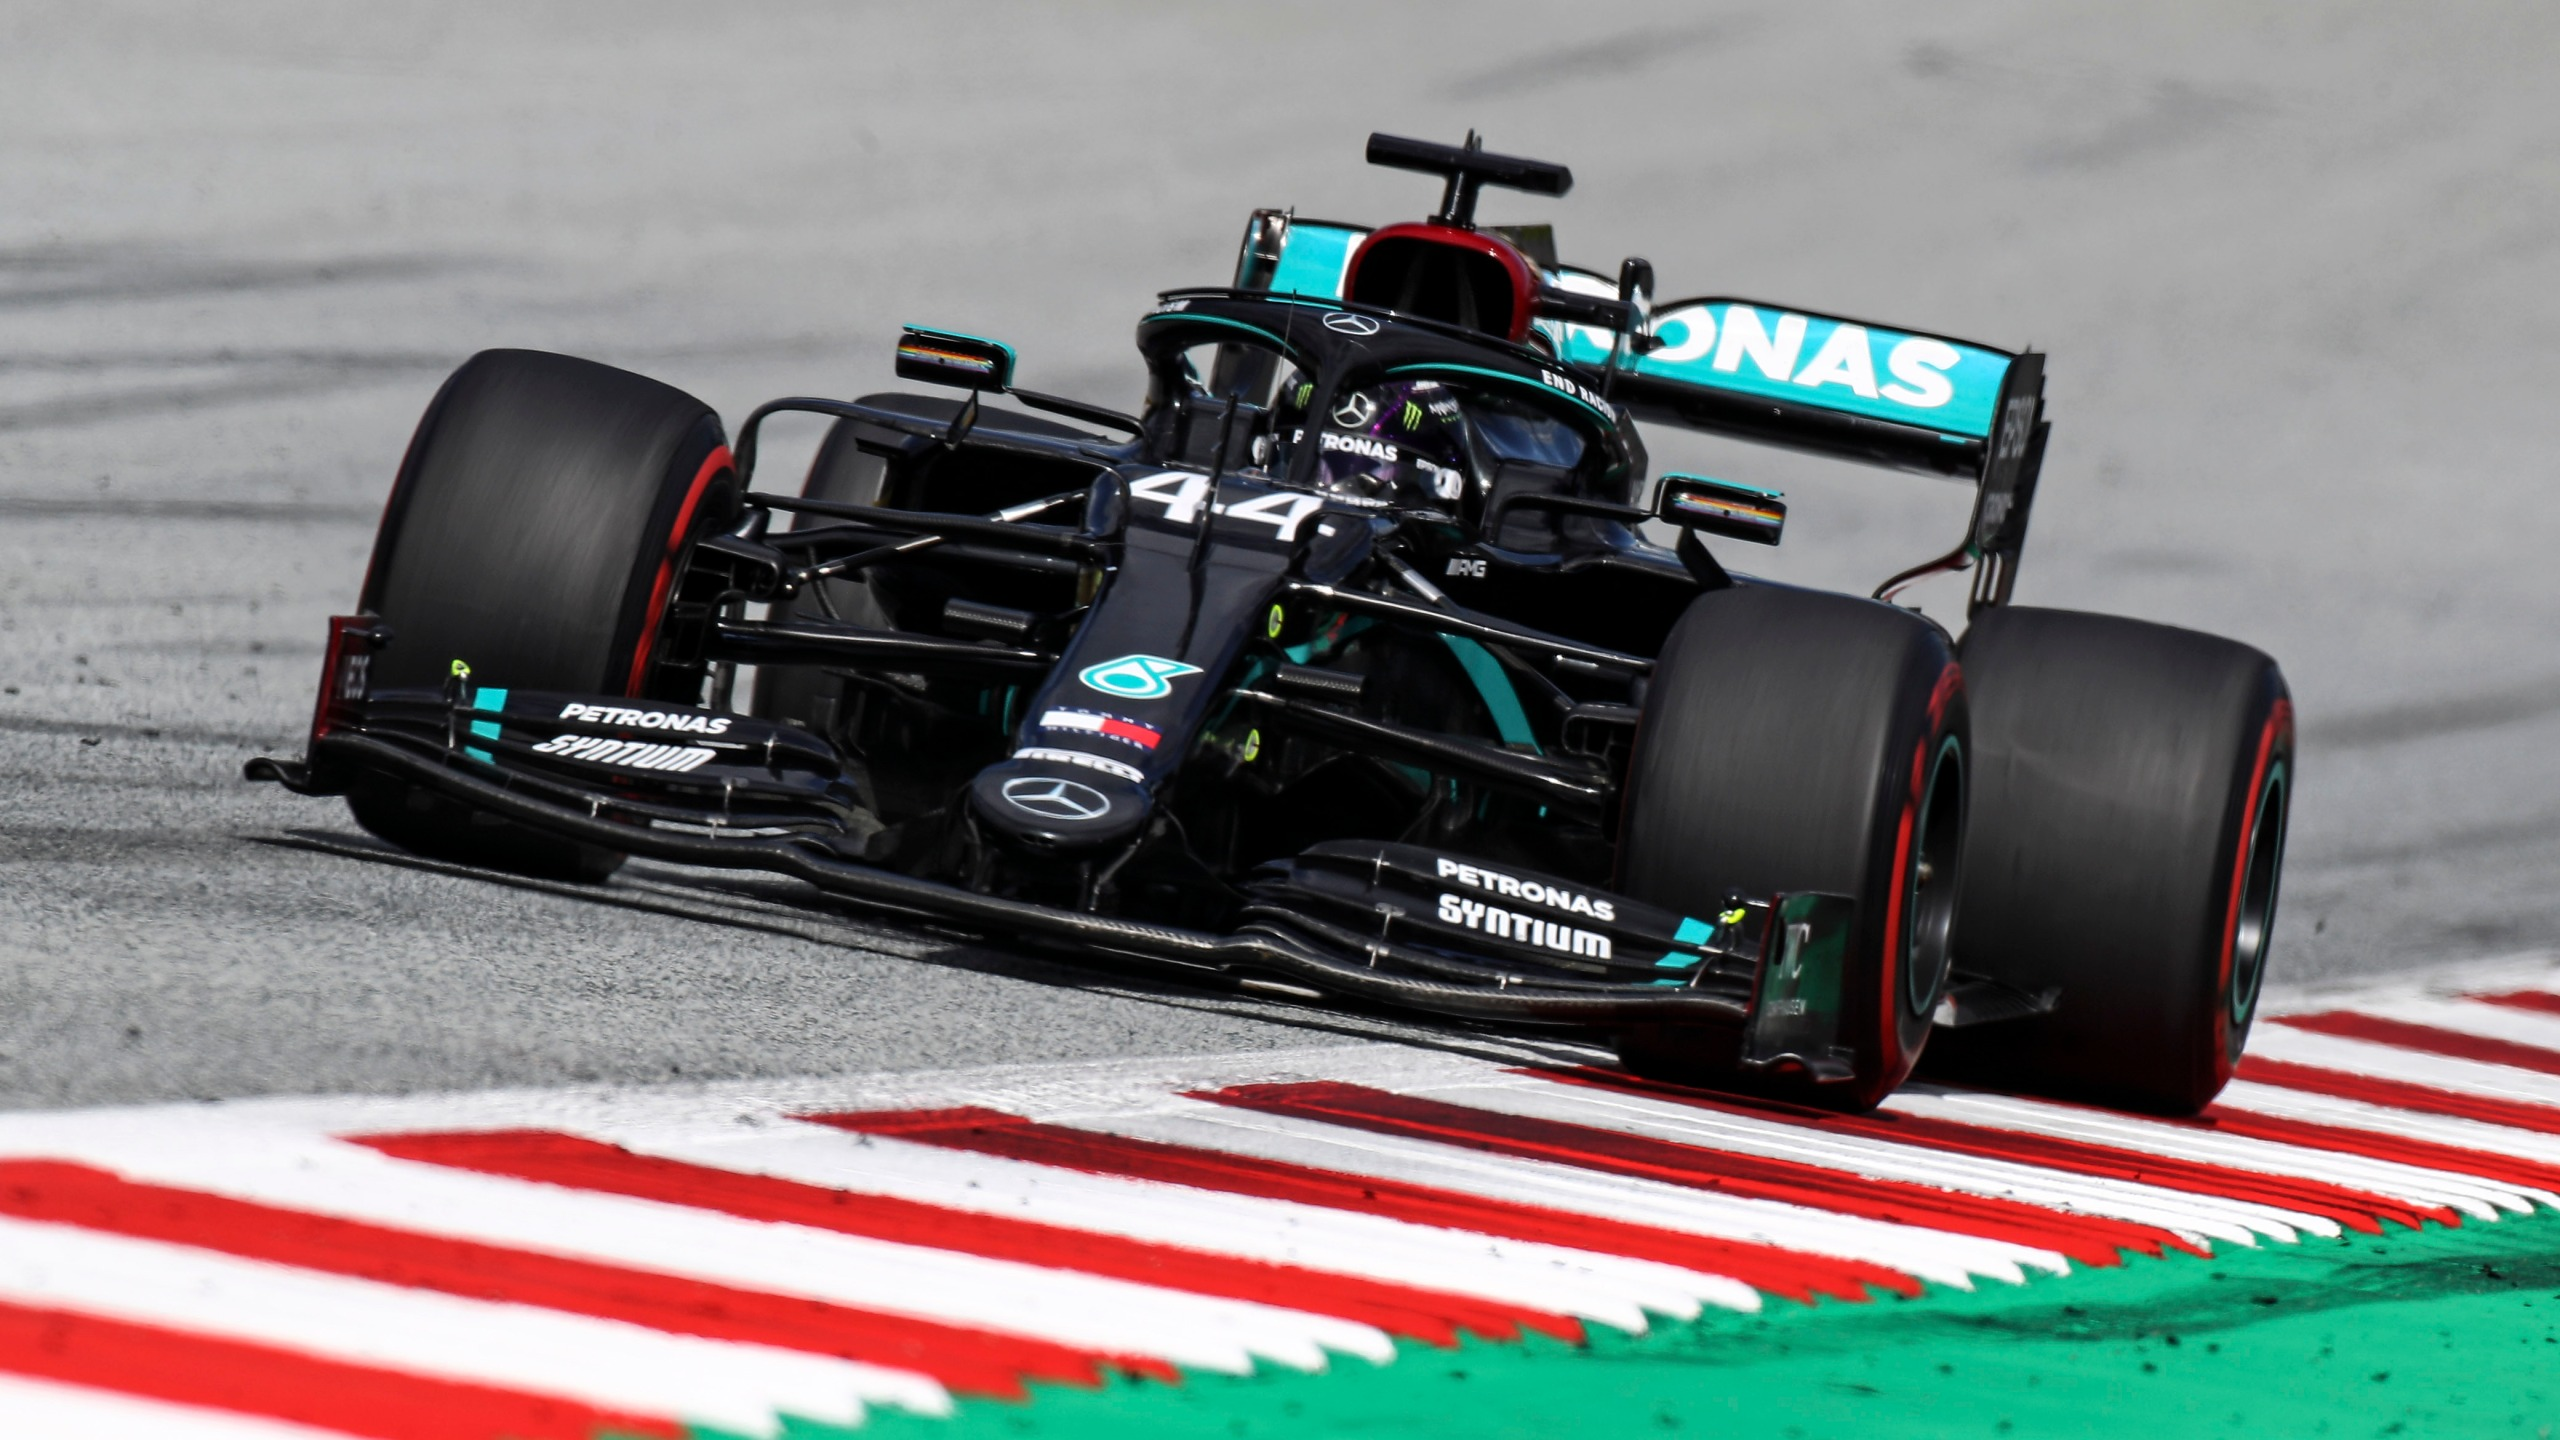 Hamilton Wins Styrian Gp Ahead Of Mercedes Teammate Bottas Fox 46 Charlotte